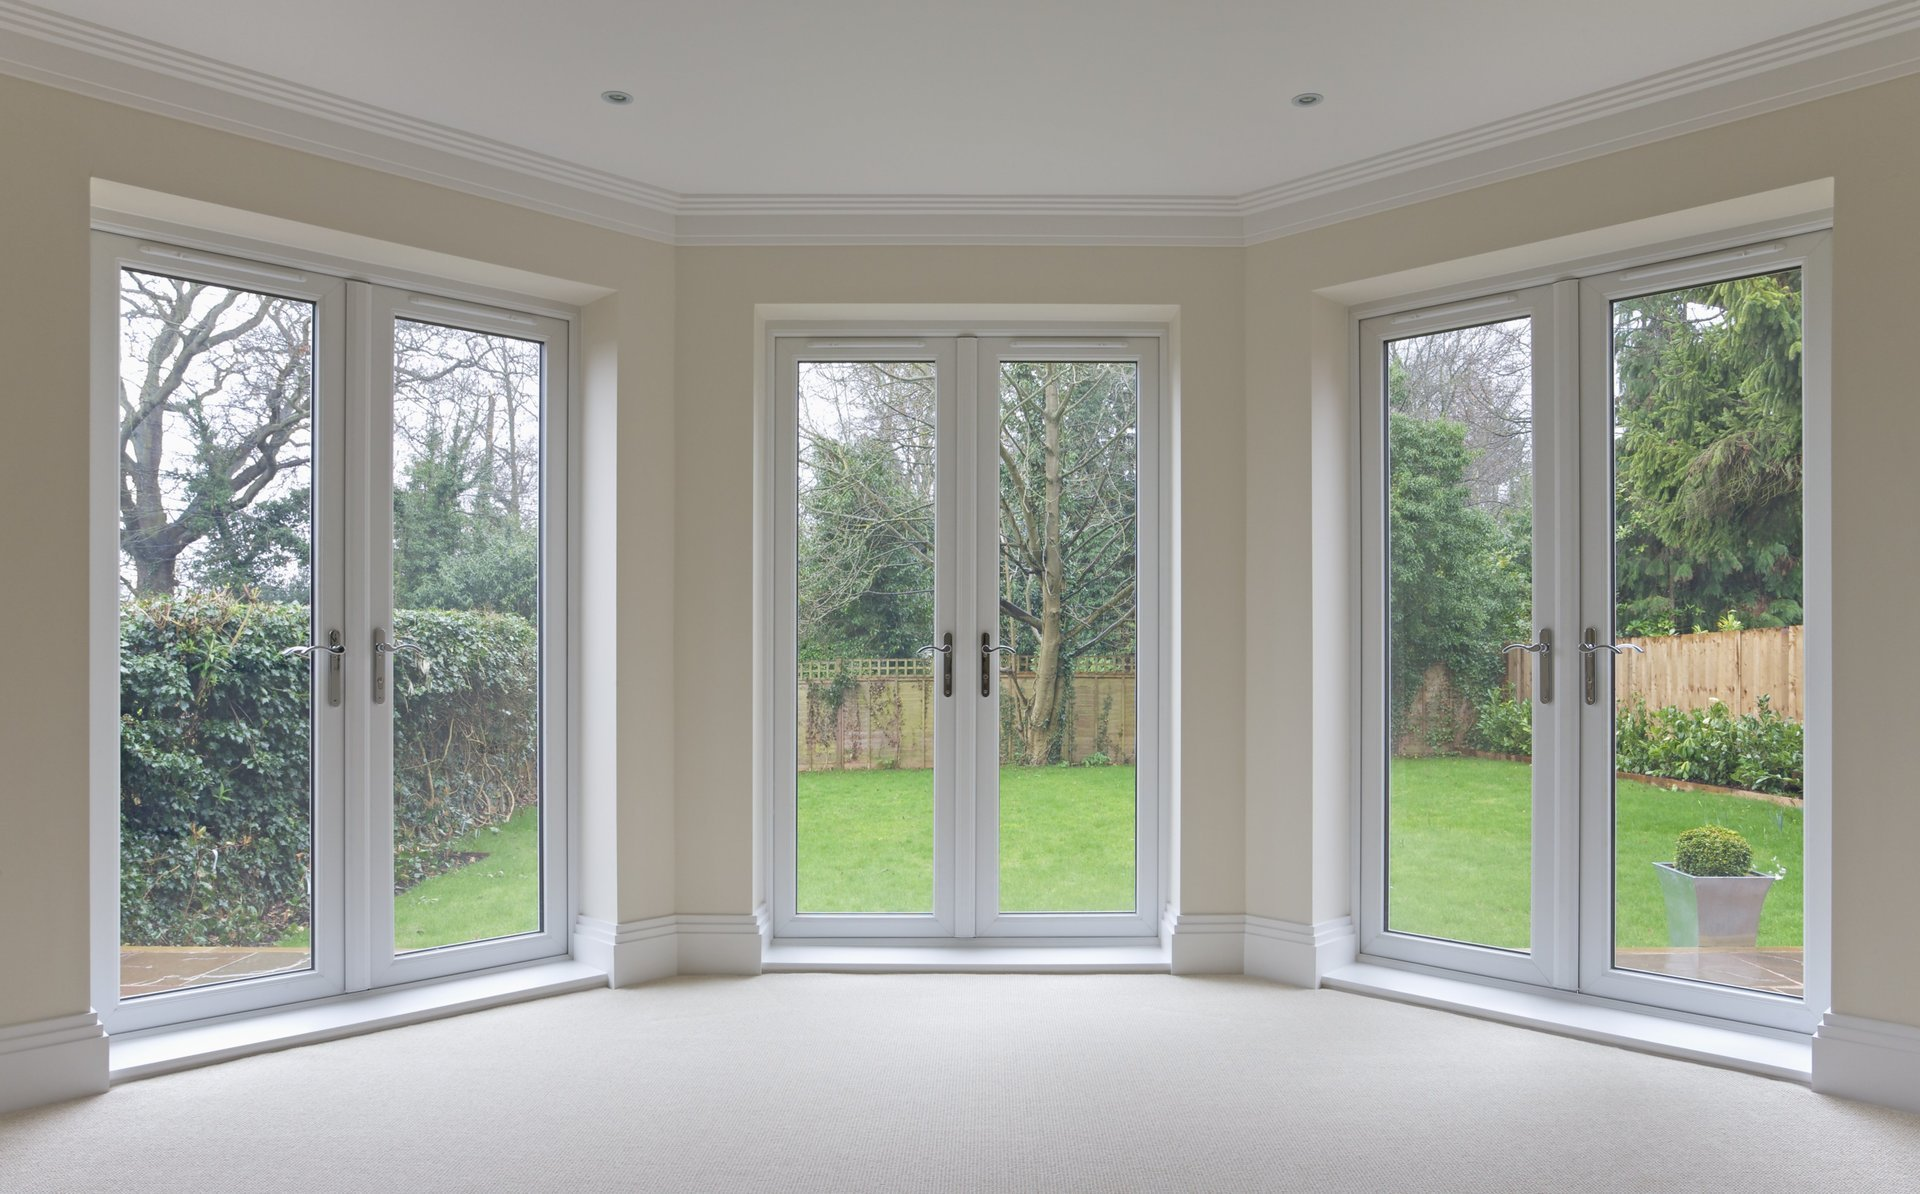 A bright room with glass doors revealing a green garden.